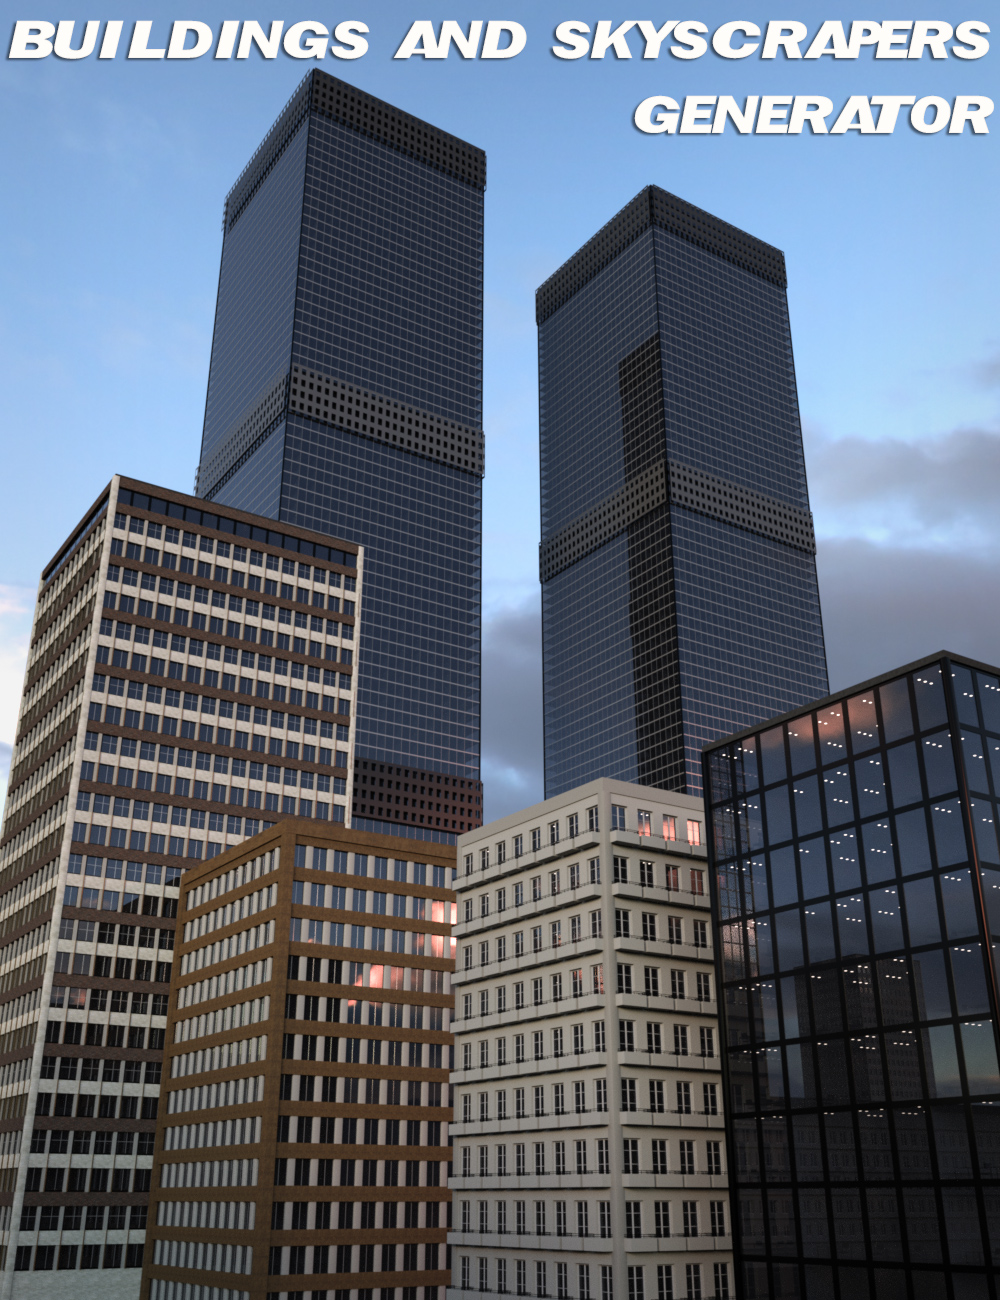 V3Digitimes Buildings and Skyscrapers Generator Vol. 1 by: V3Digitimes, 3D Models by Daz 3D